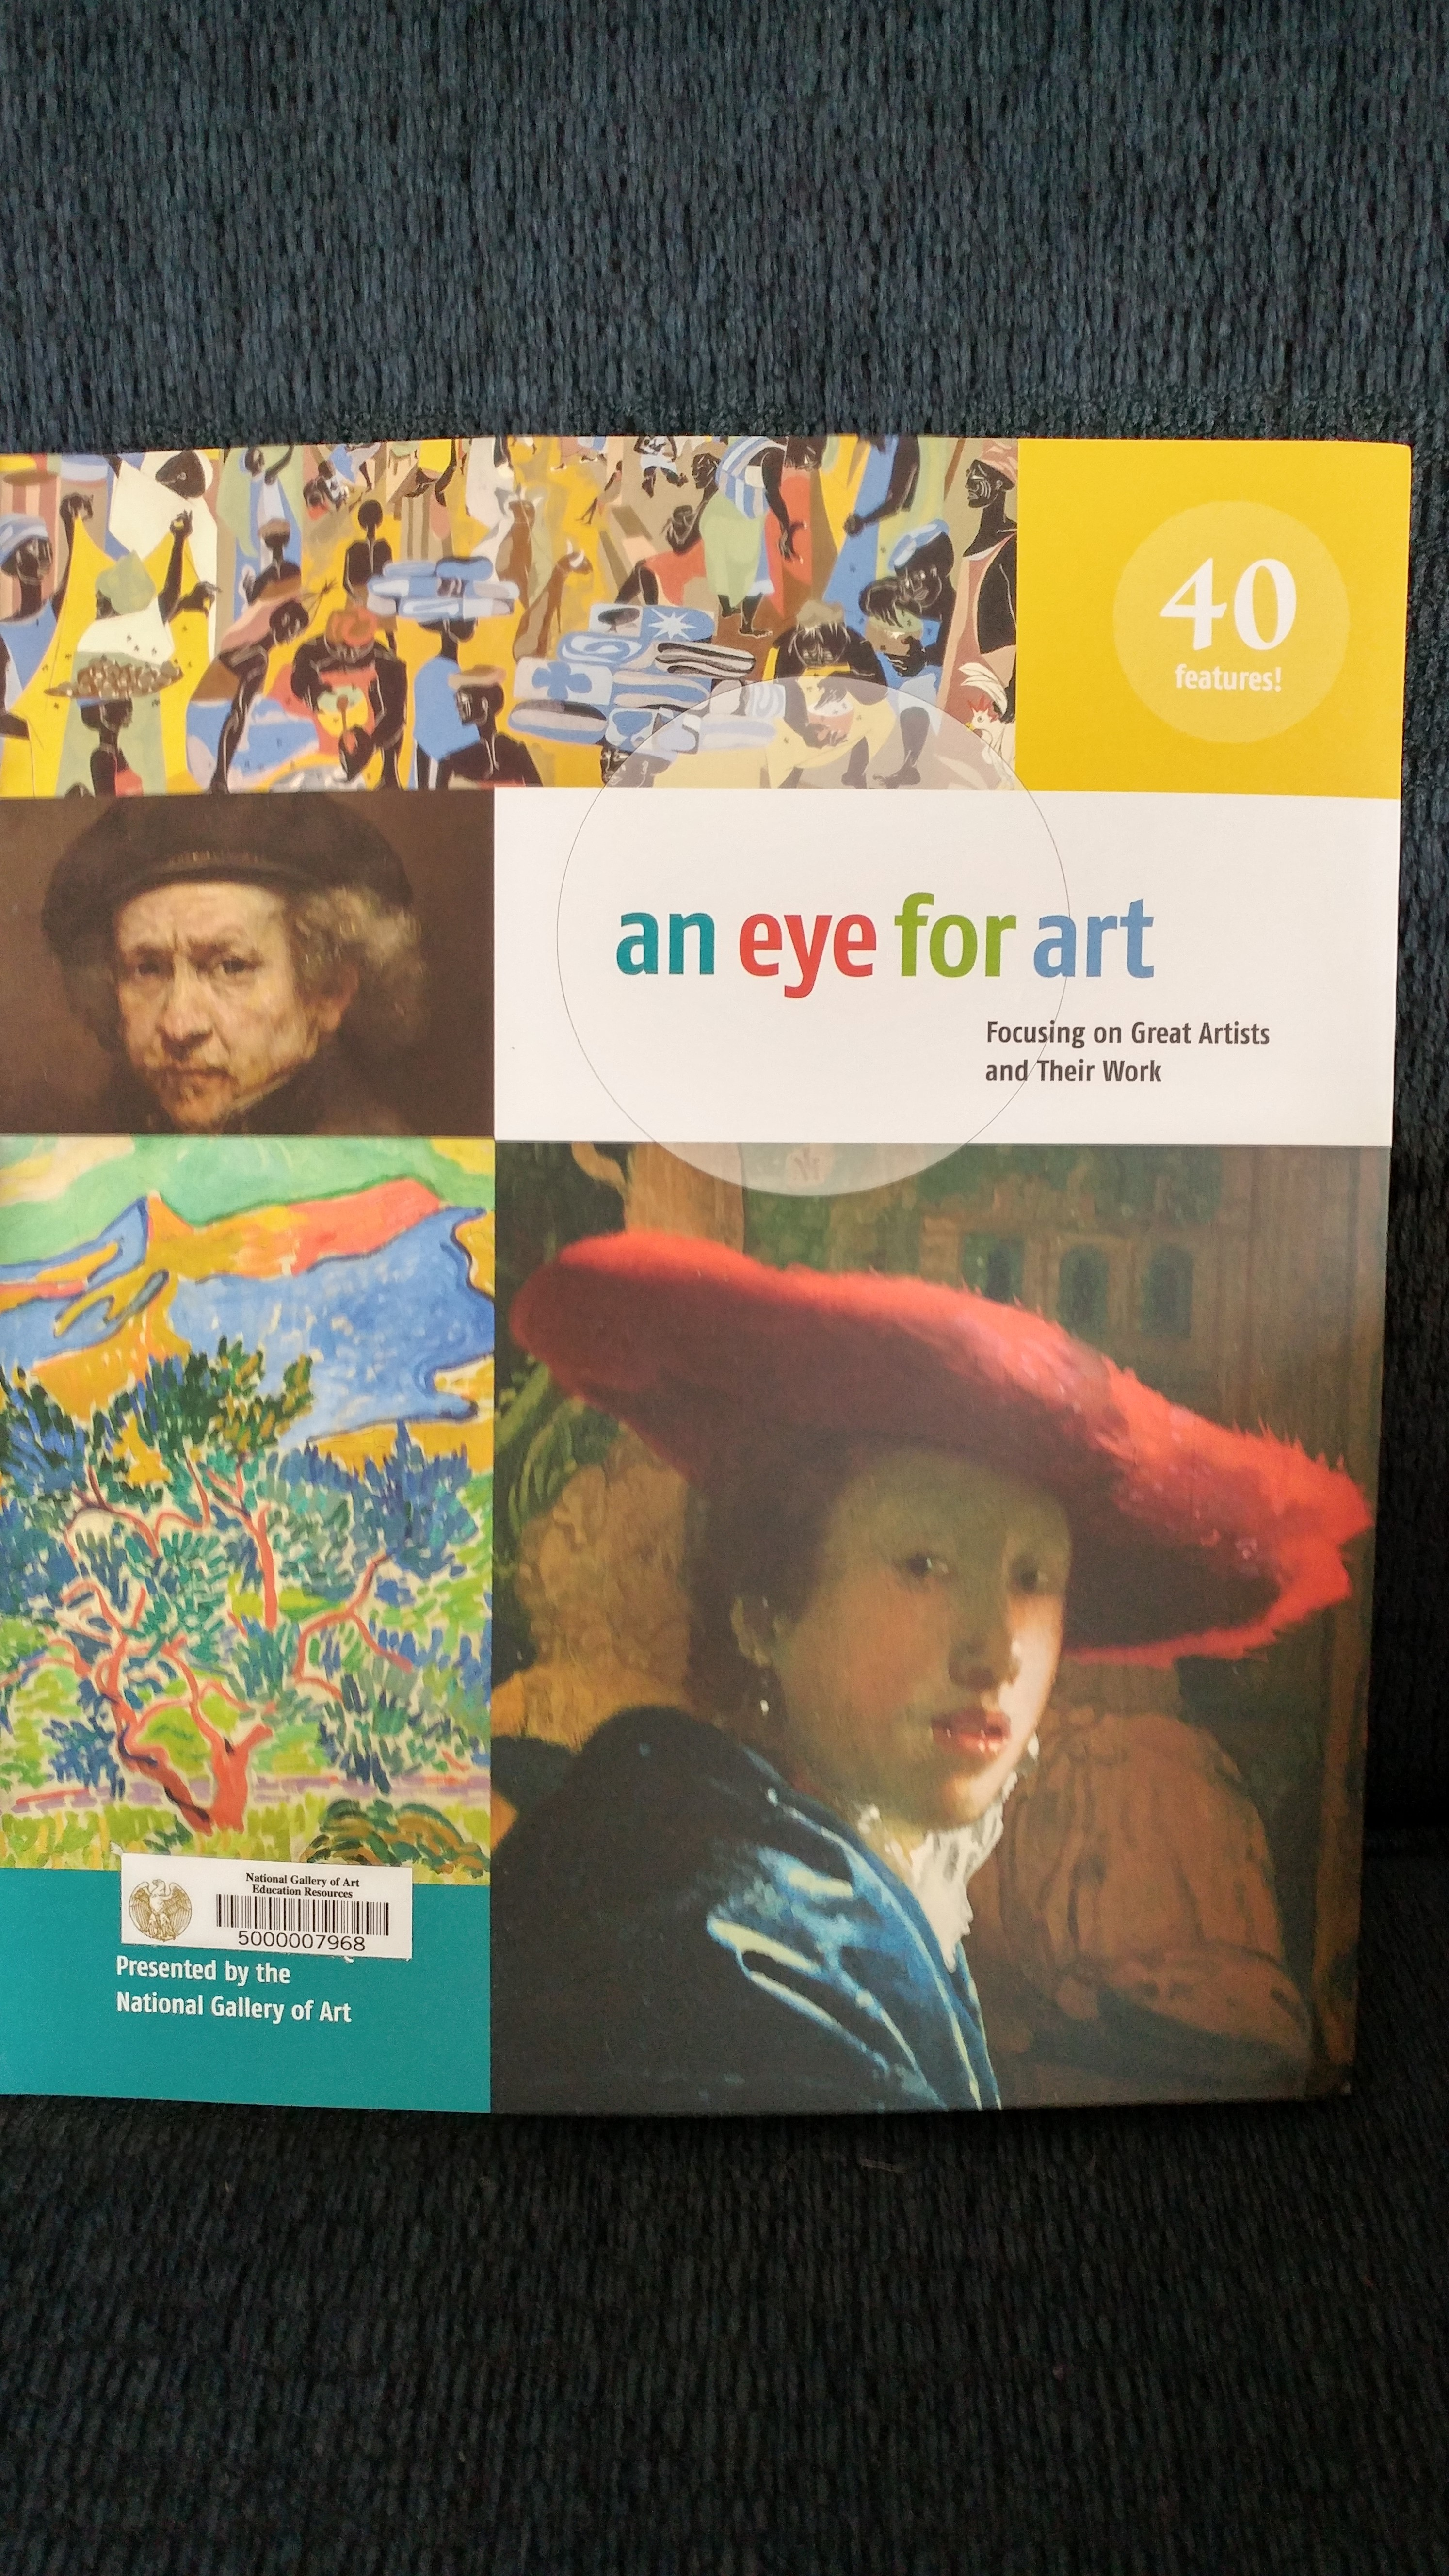 An Eye For Art - a book we borrowed from the National Gallery of Art